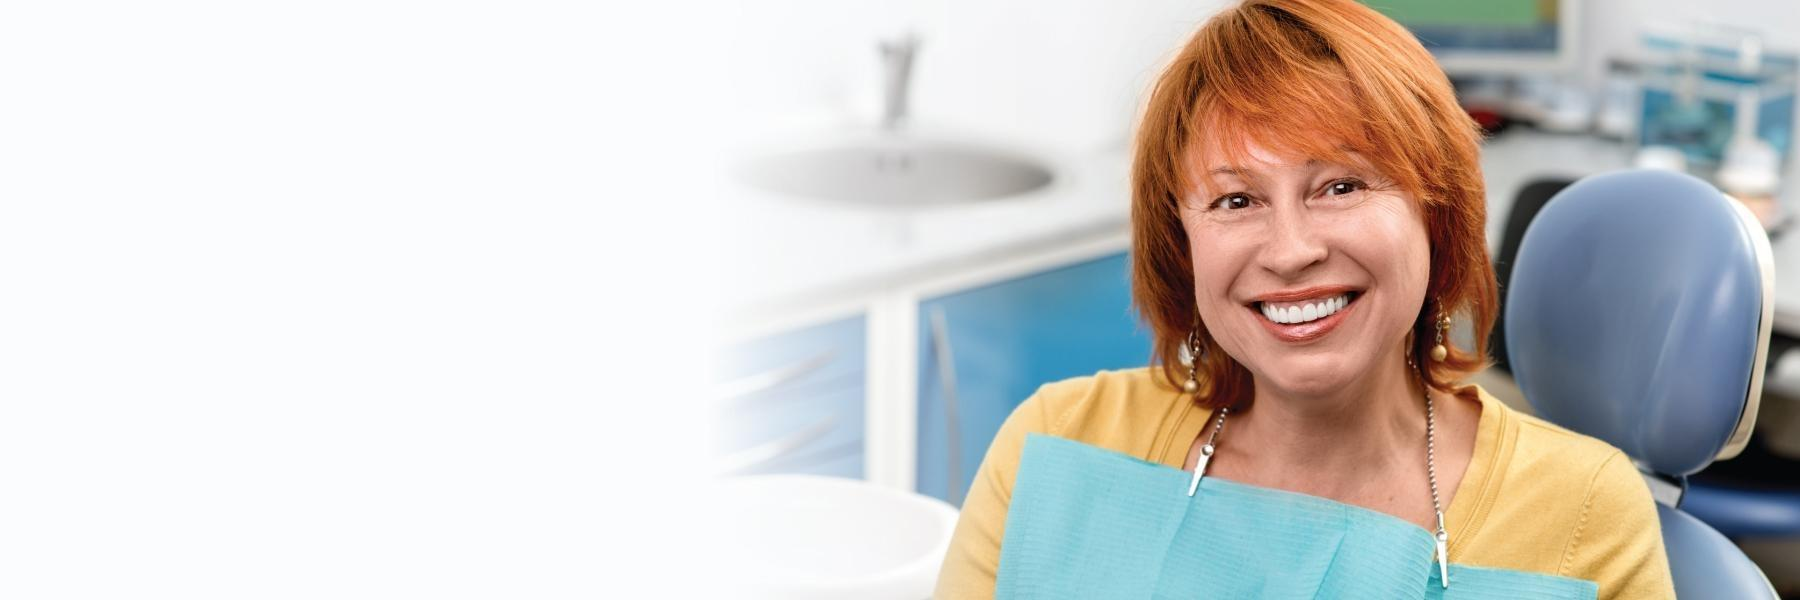 Woman with red hair smiling in a dental exam room